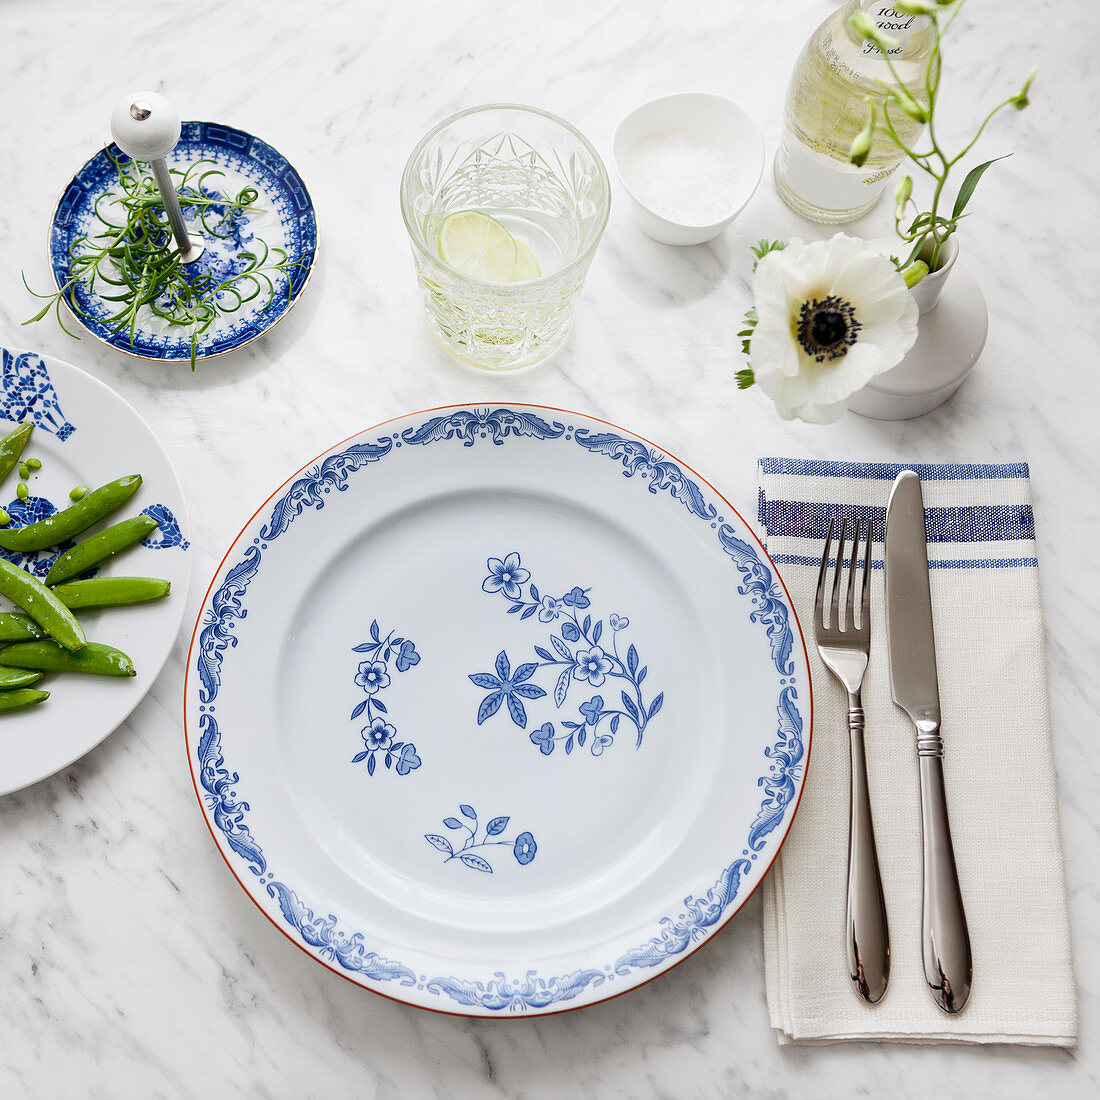 A place setting with floral plates, cutlery and a cloth napkin